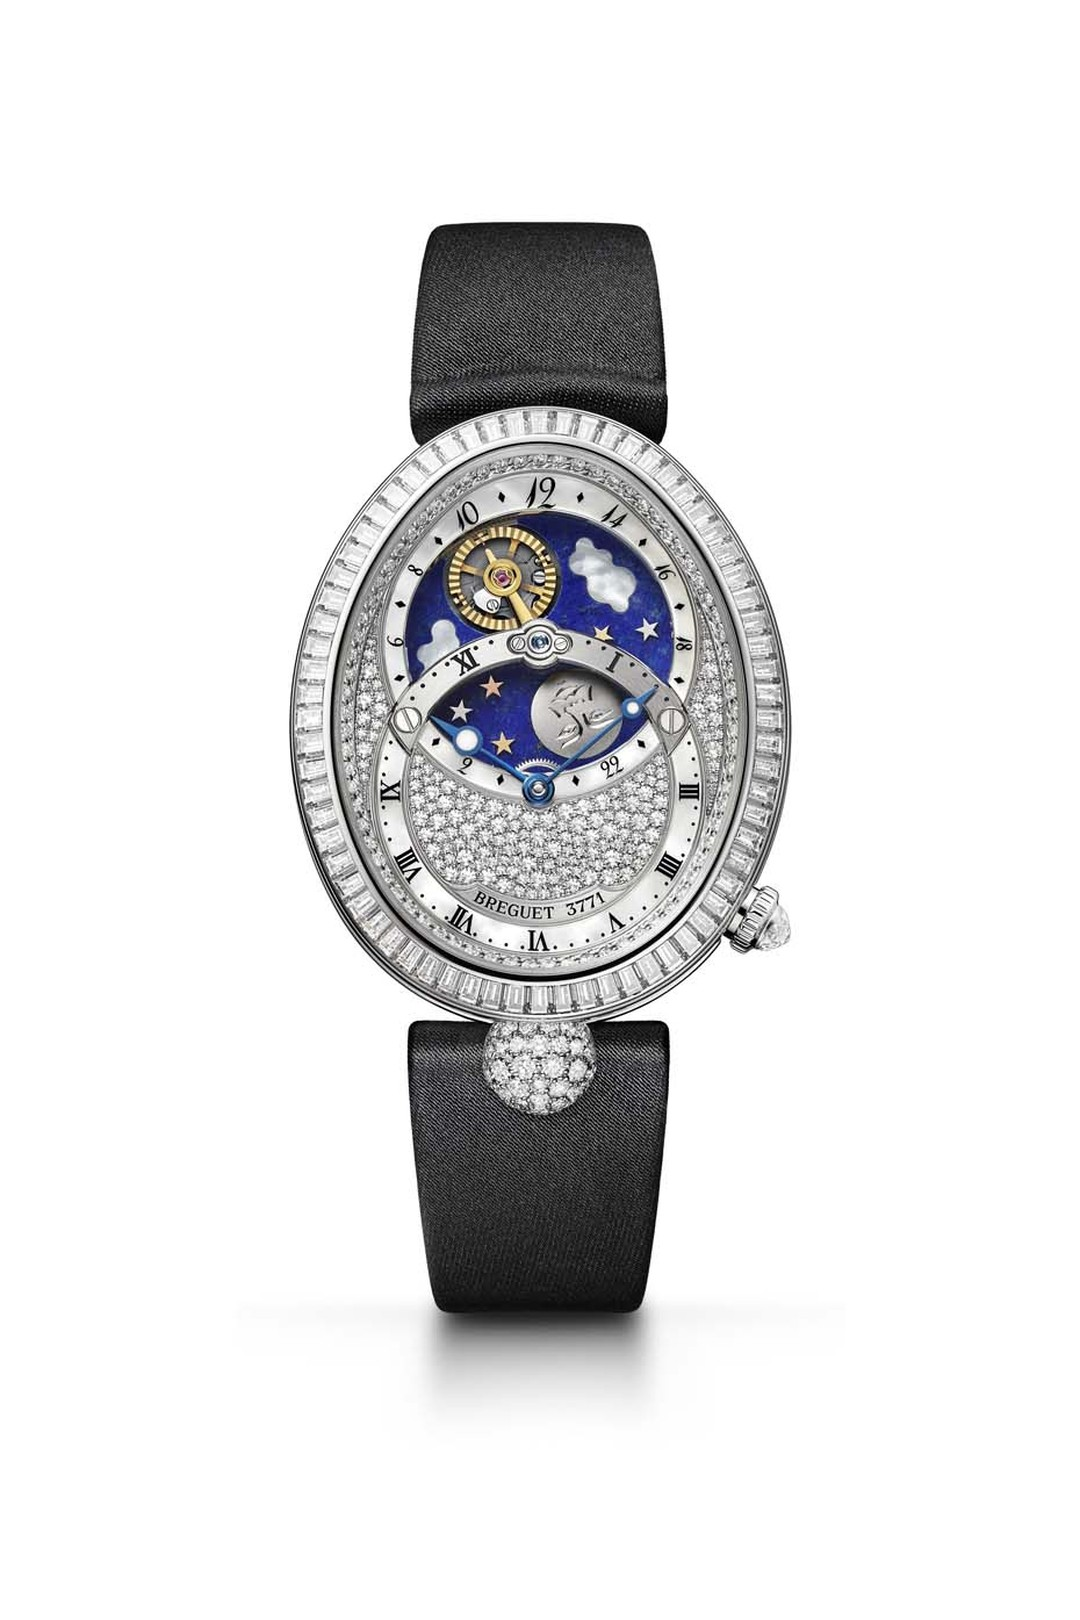 Breguet's Reine de Naples Jour/Nuit diamond watch features two overlapping dials covered in an array of diamonds.